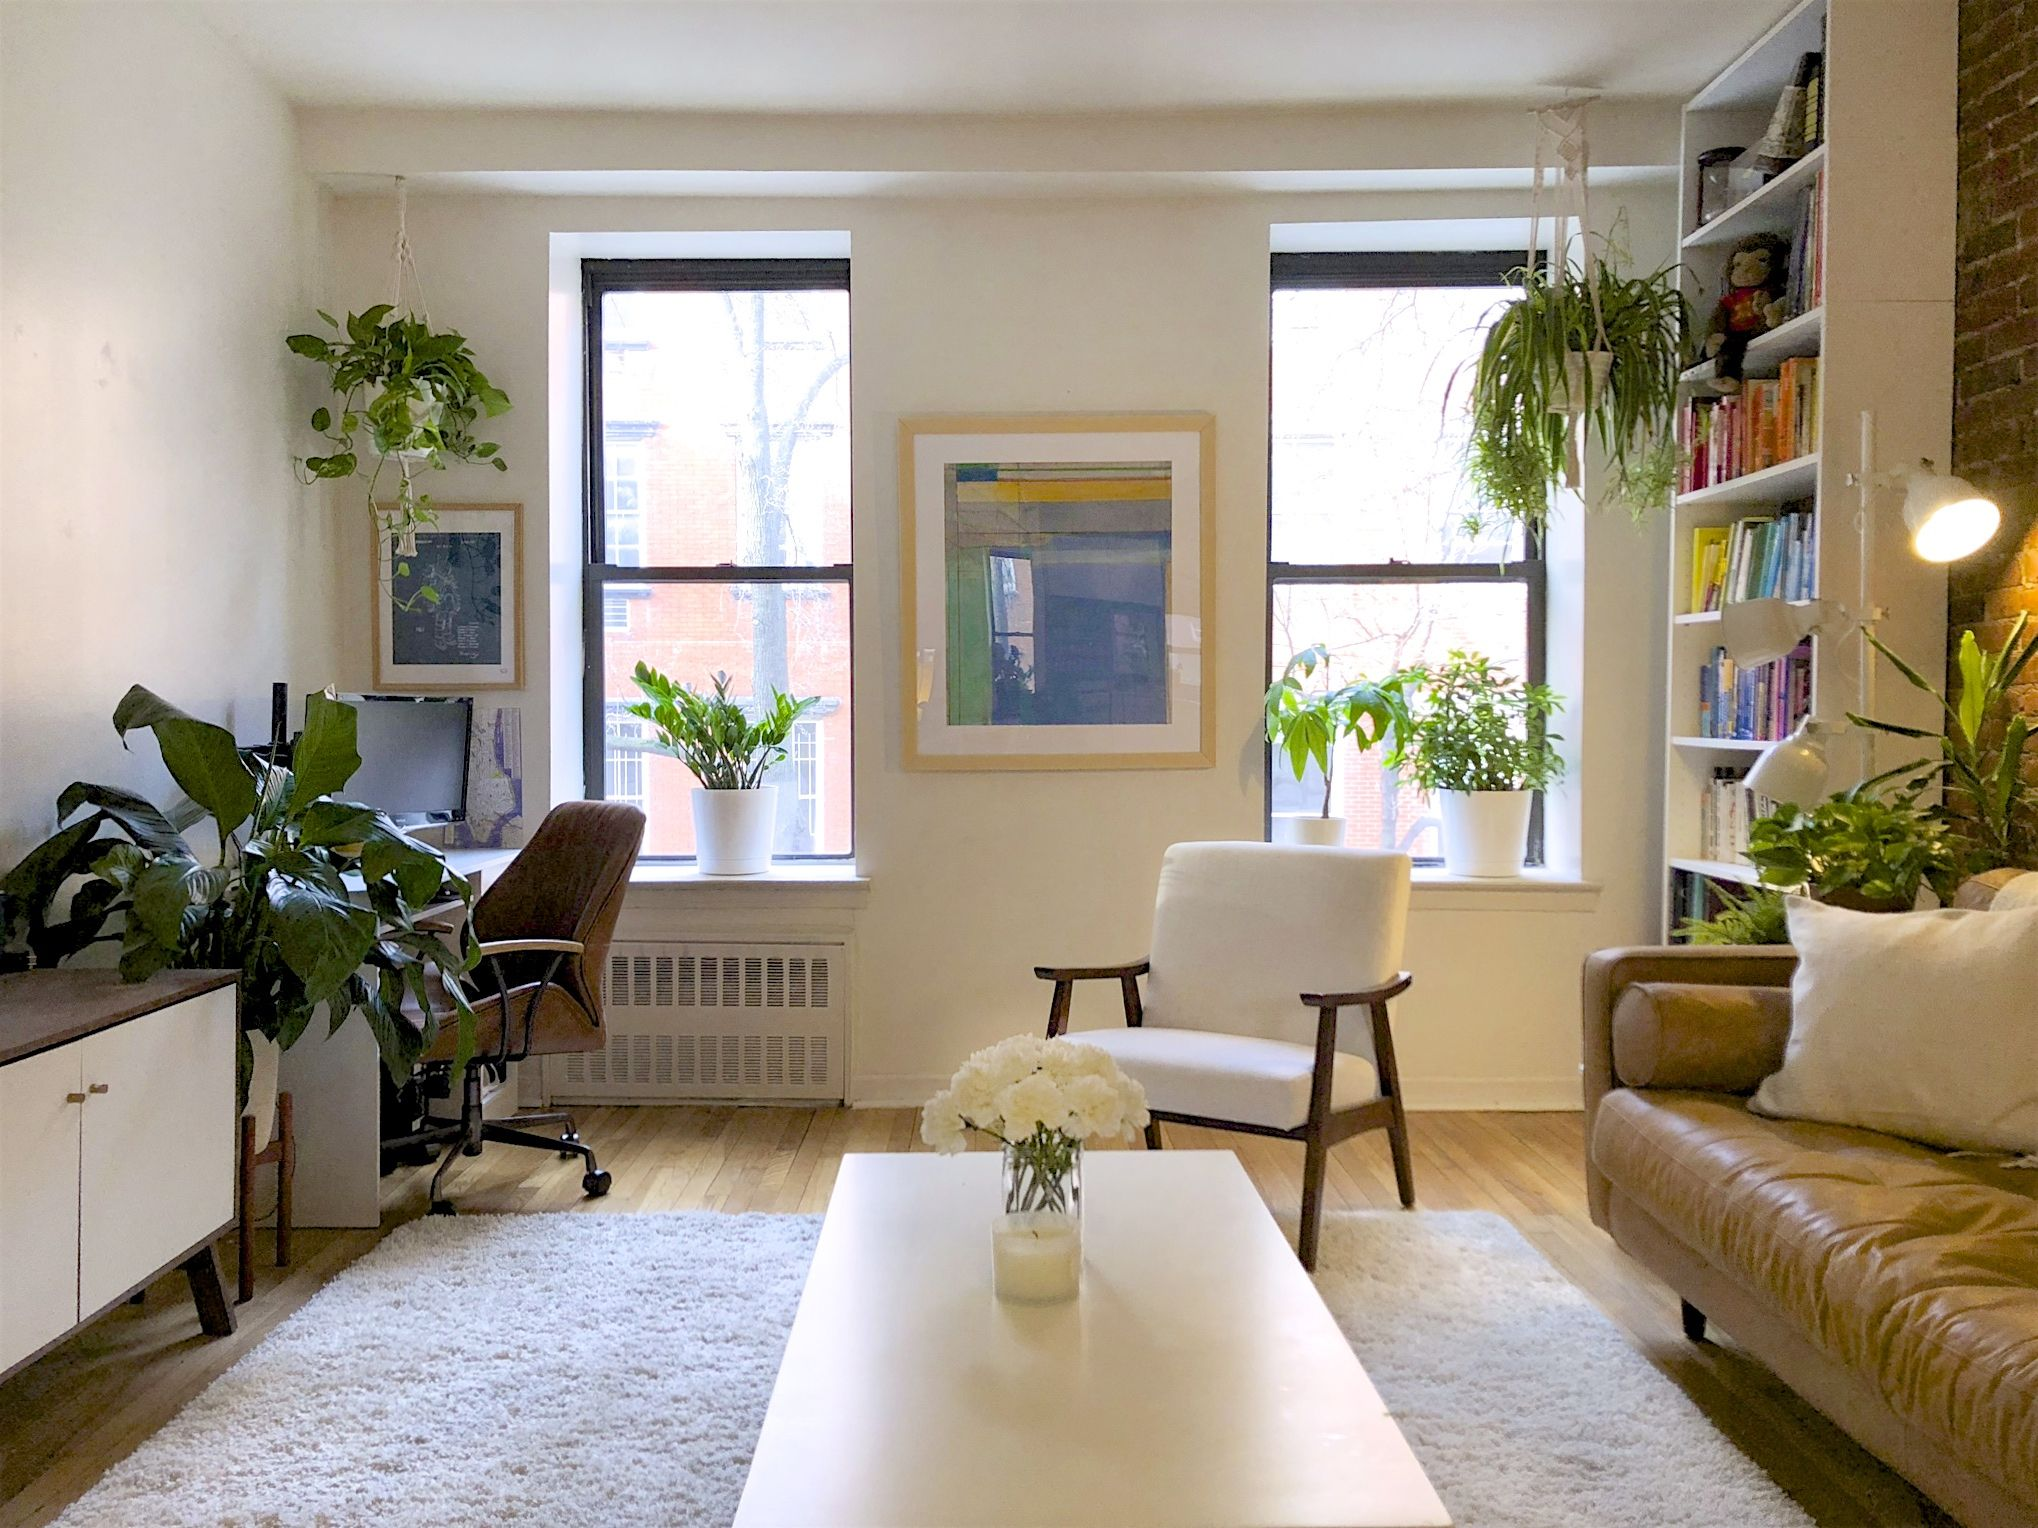 A Small Nyc Apartment Has The Cutest Simple Plant Display Above